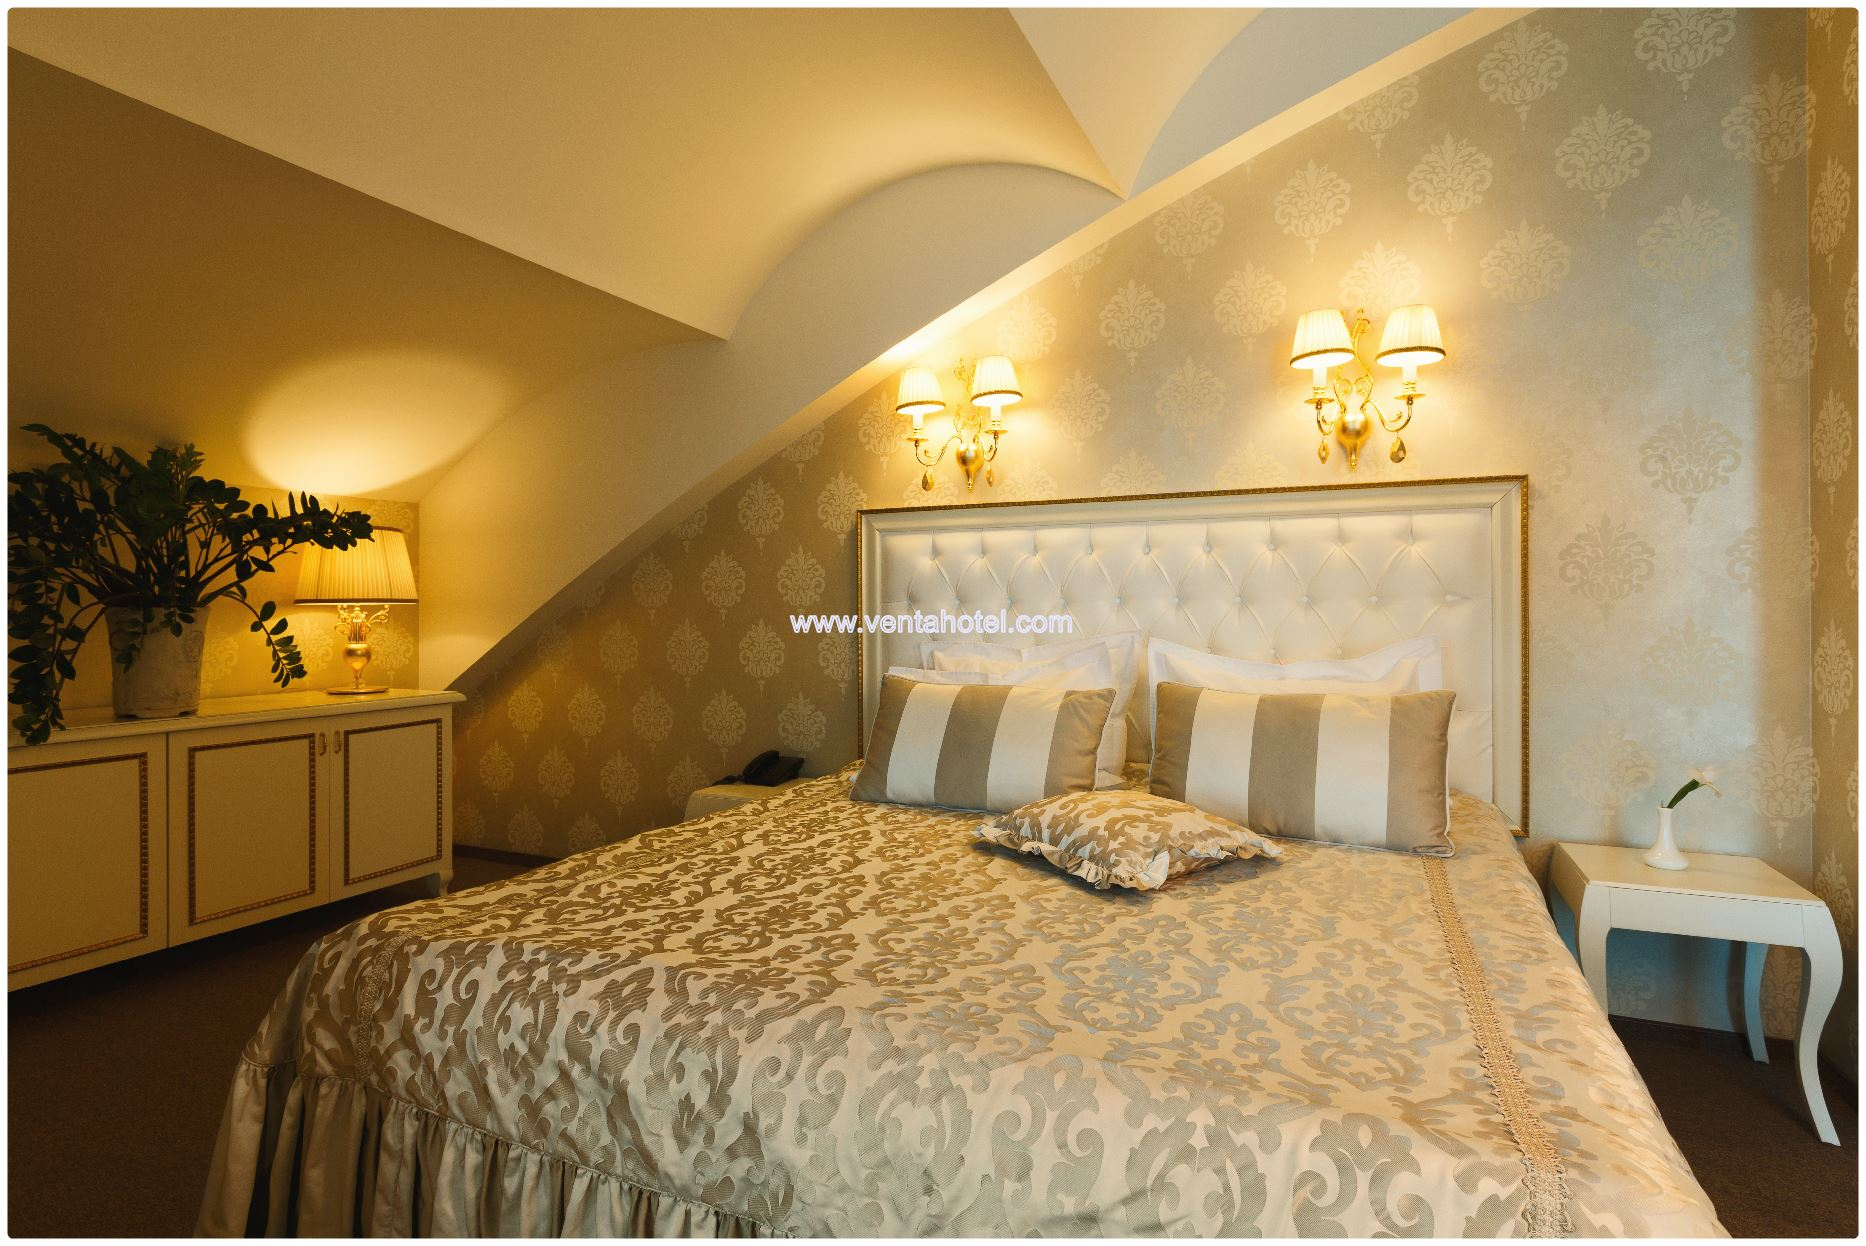 Muebles Contract para hoteles